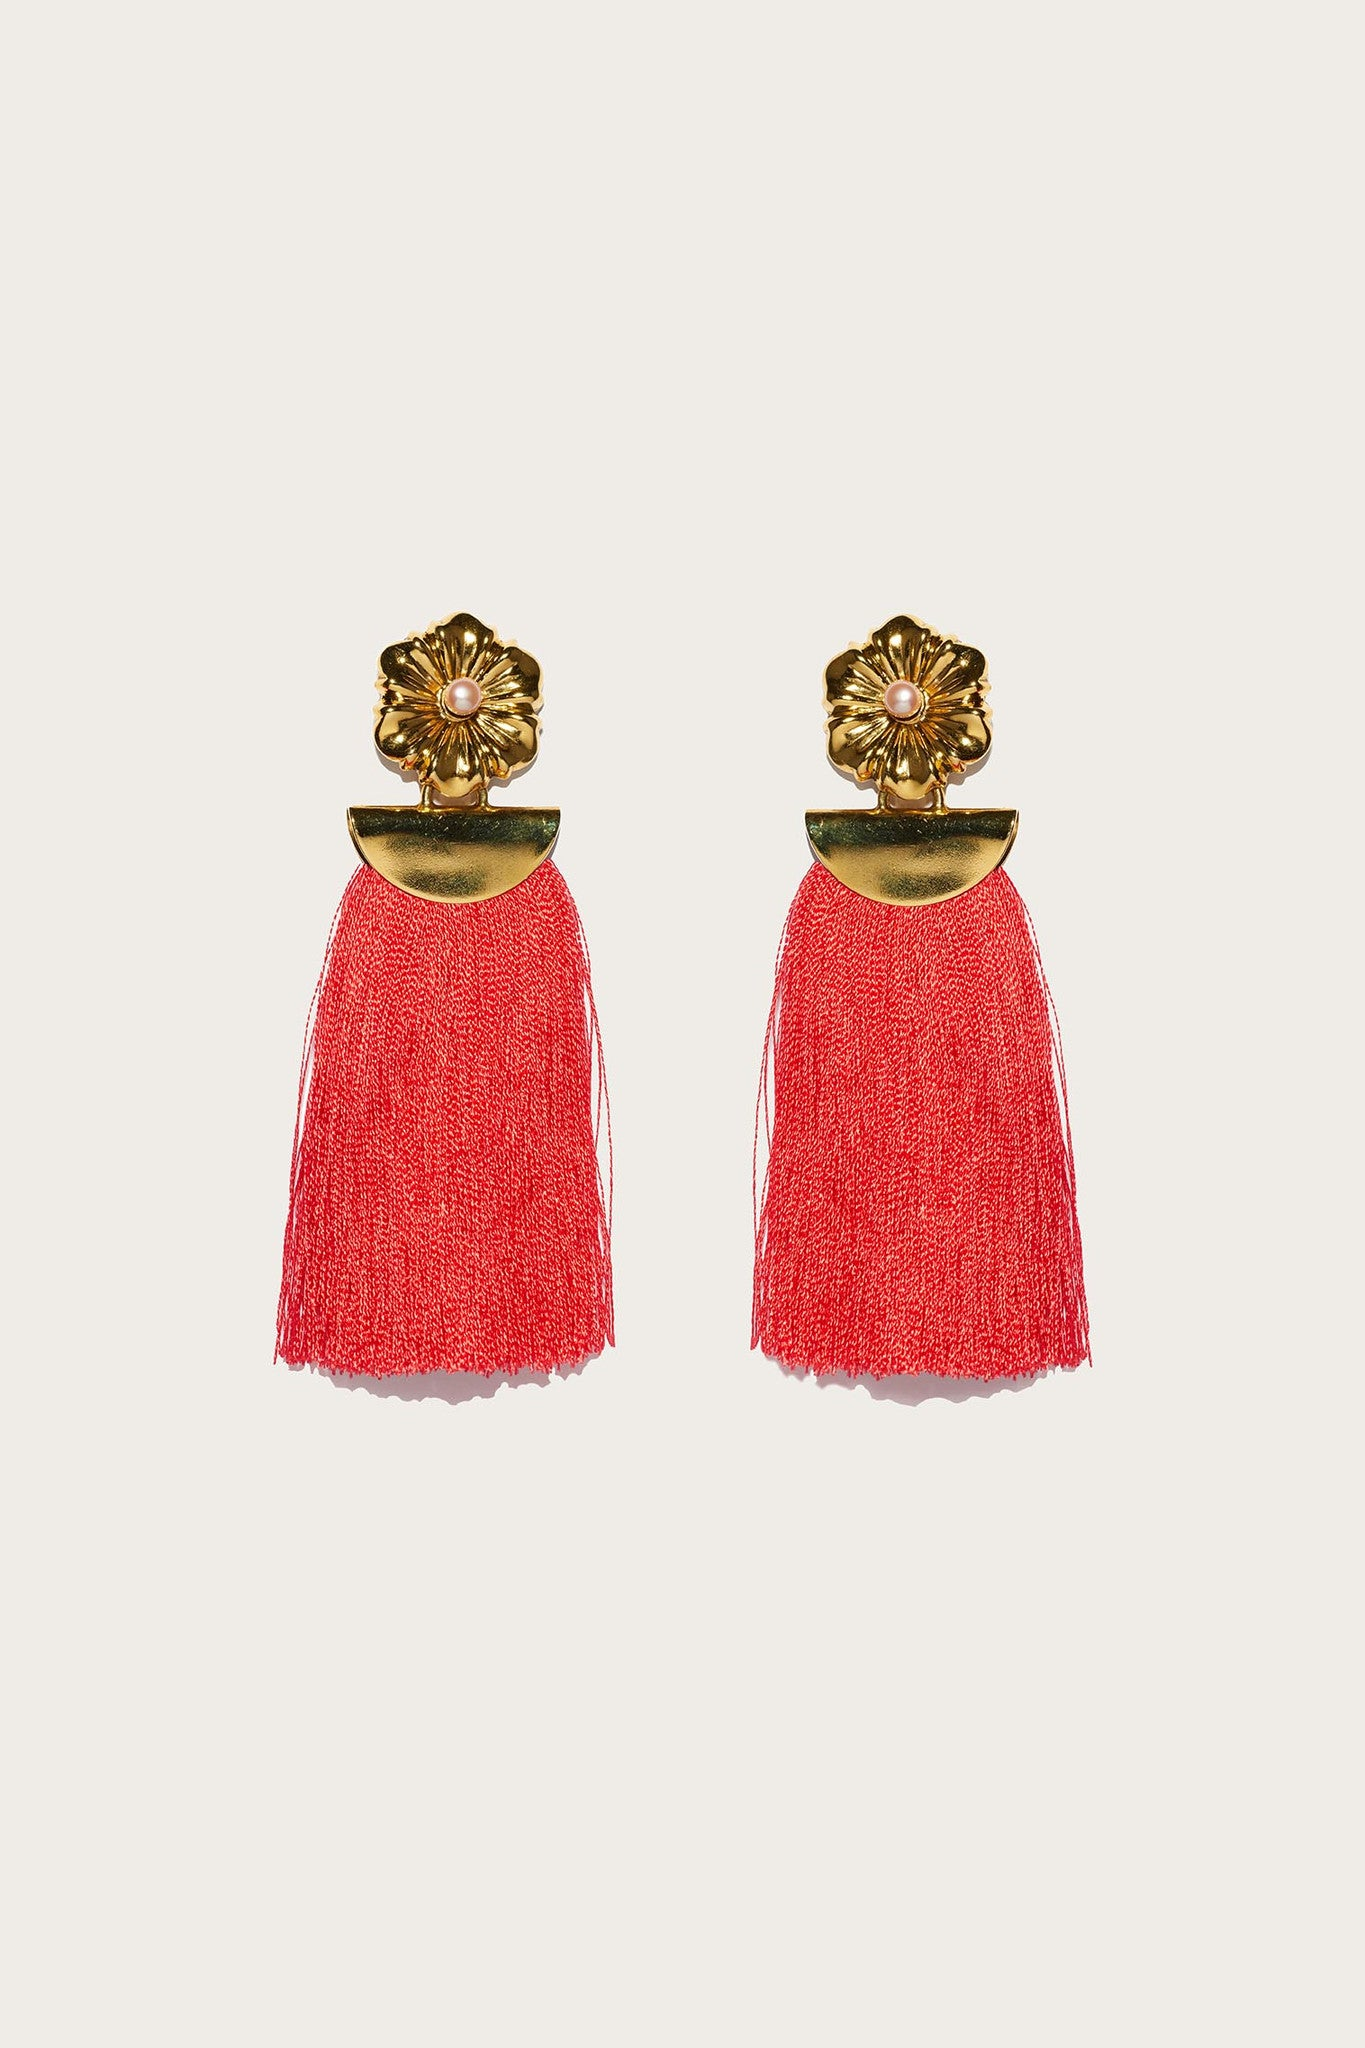 Poppy Fringe Earrings by Lizzie Fortunato